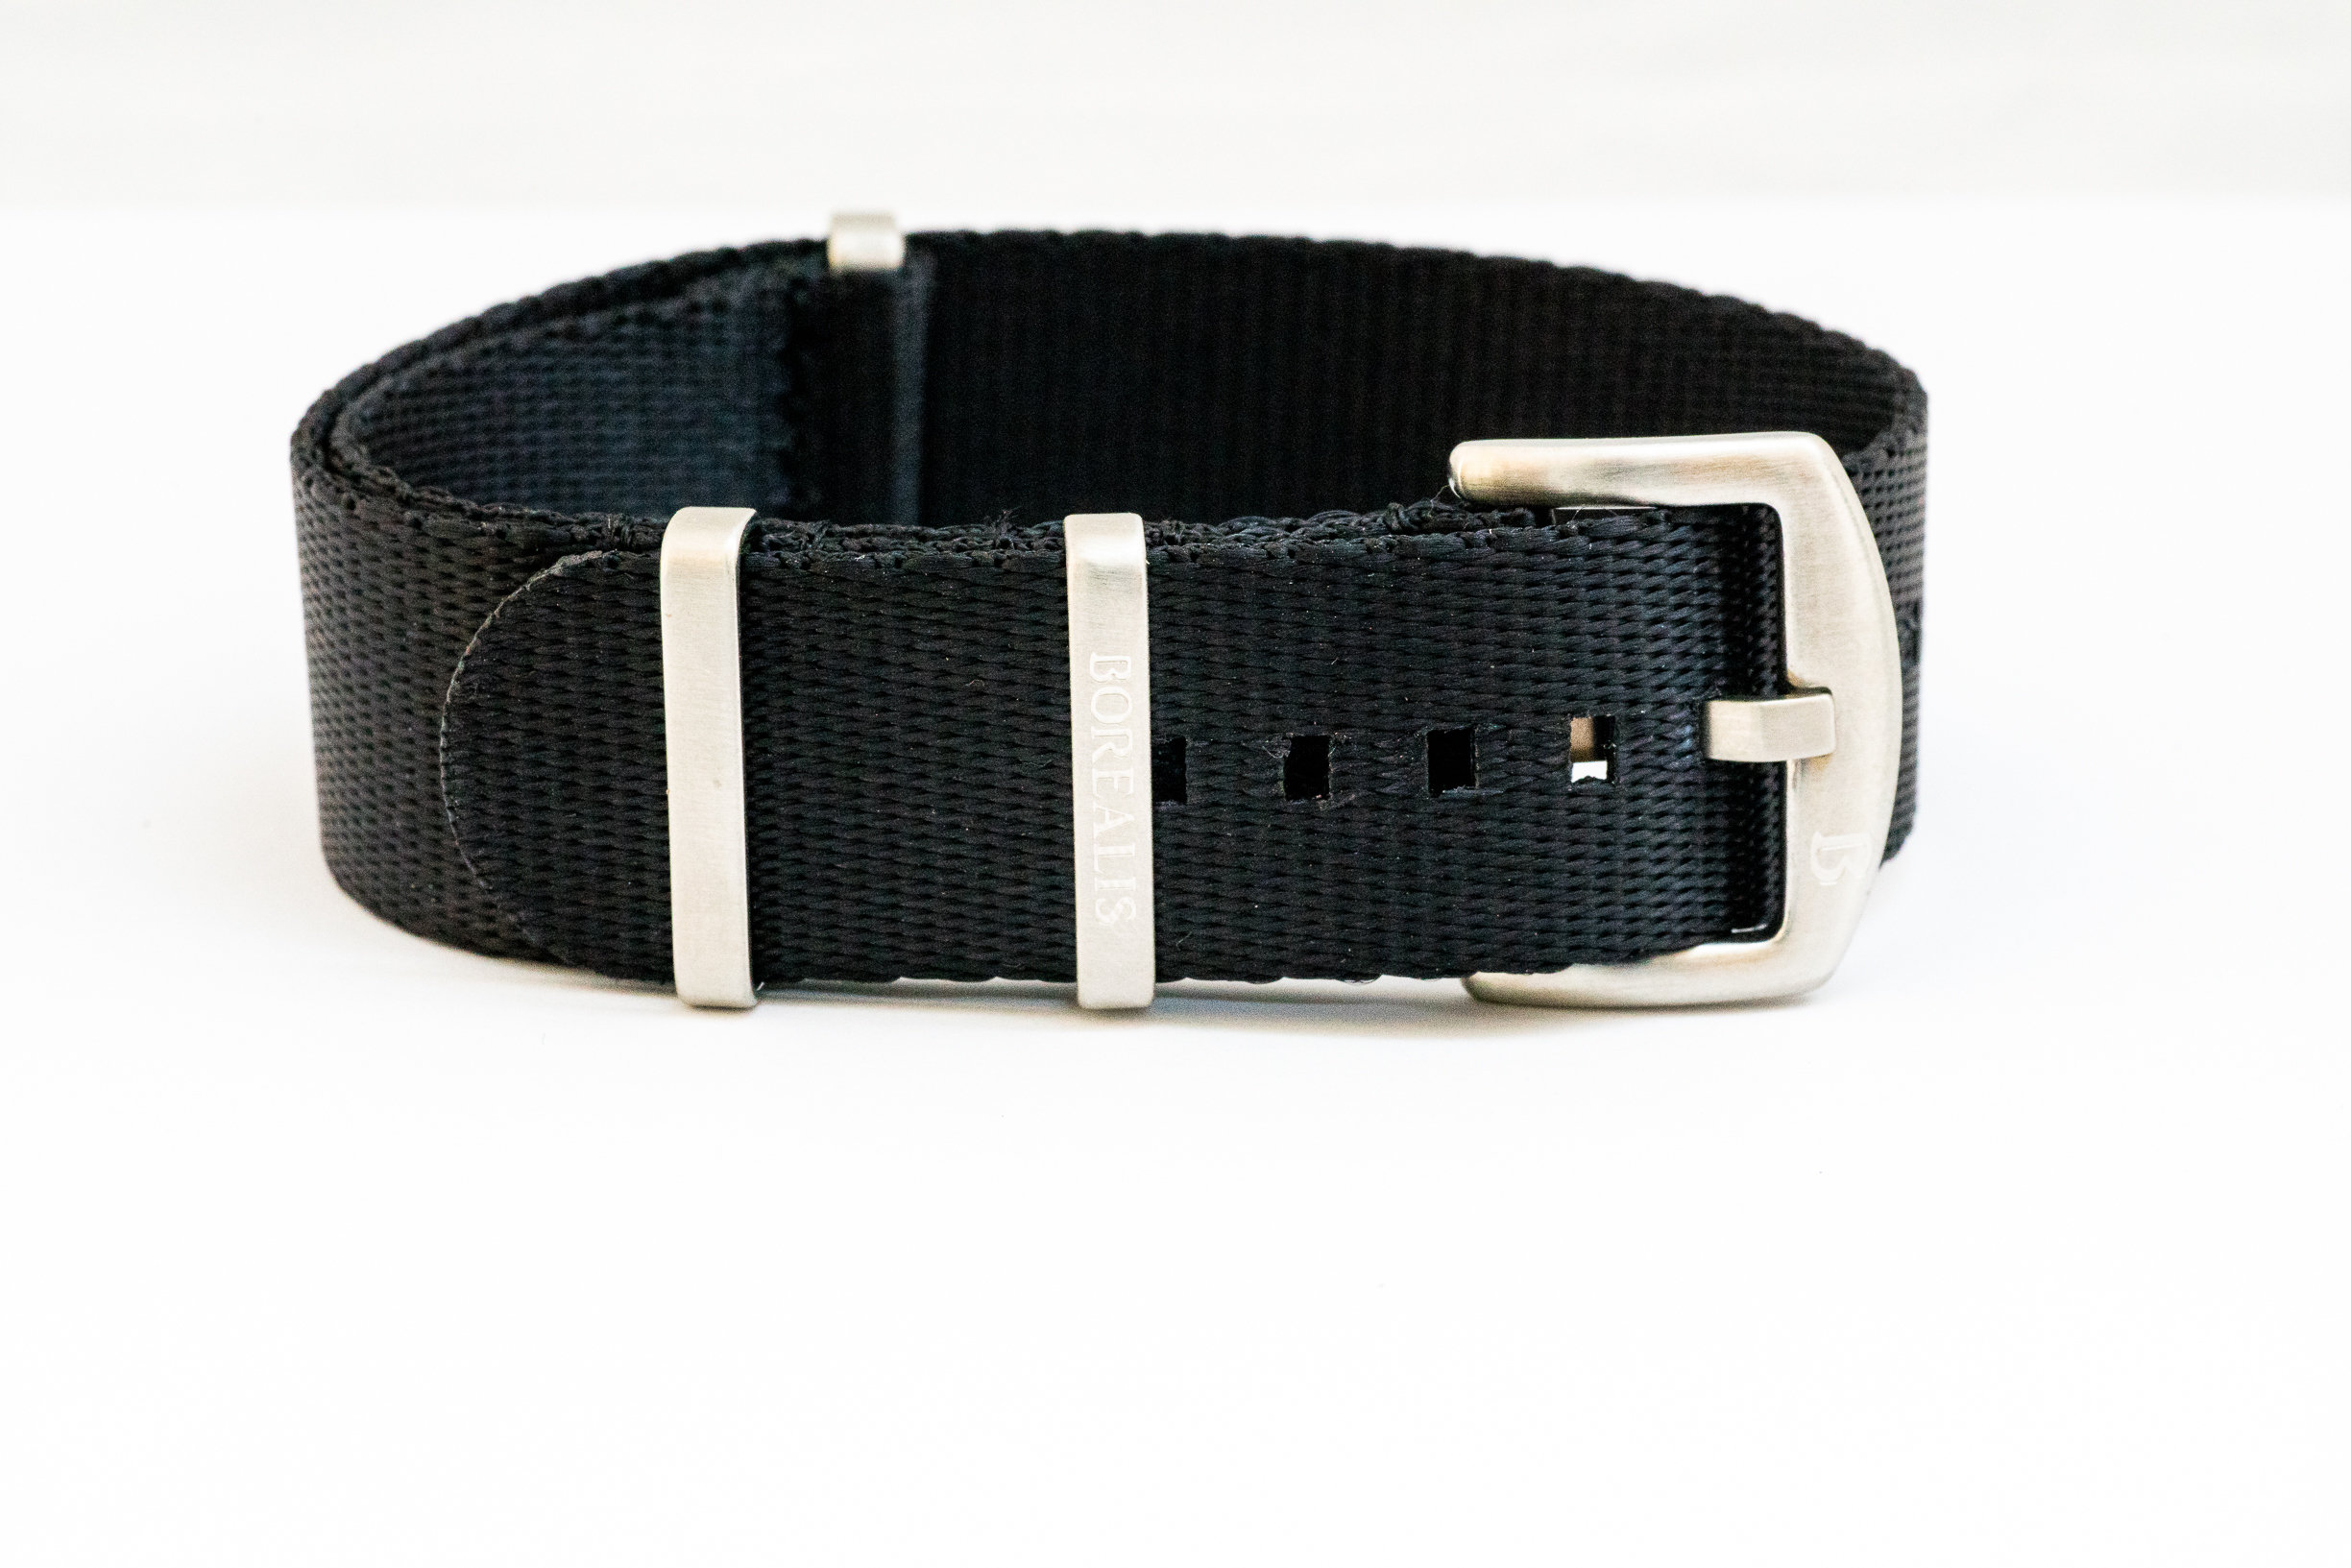 Borealis premium Nato style seatbelt 1.4mm nylon weave strap 20mm size black BNSBLACK1.4-20MM